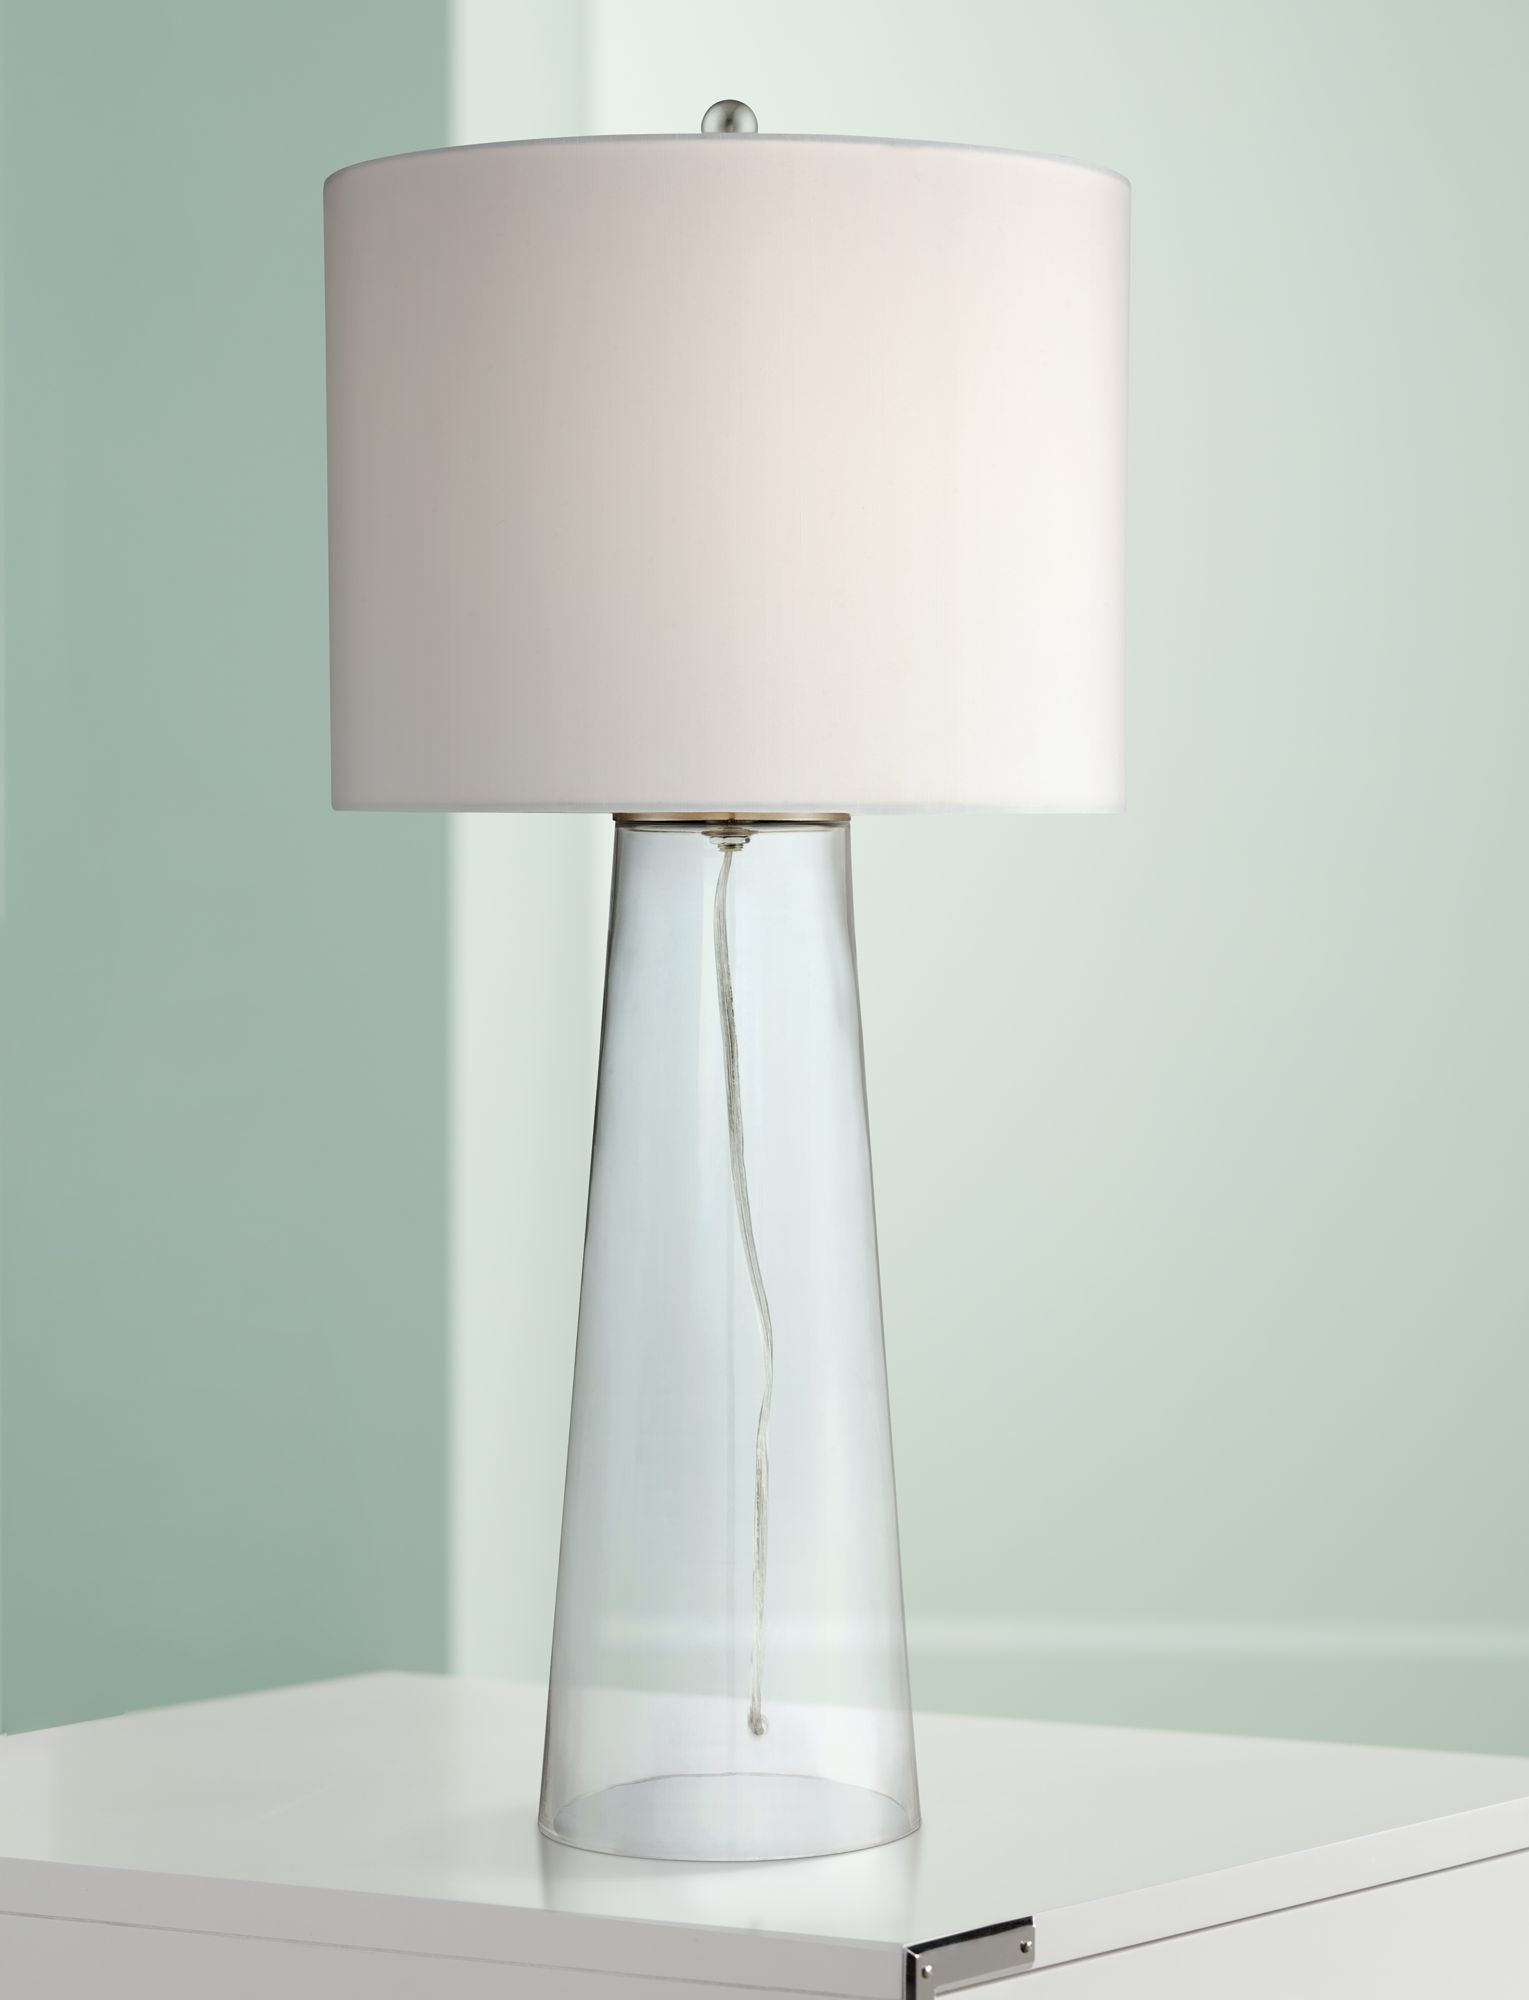 360 Lighting Coastal Table Lamp Clear Glass Tapered Column White Drum Shade  For Living Room Family Bedroom Bedside Nightstand   Walmart.com